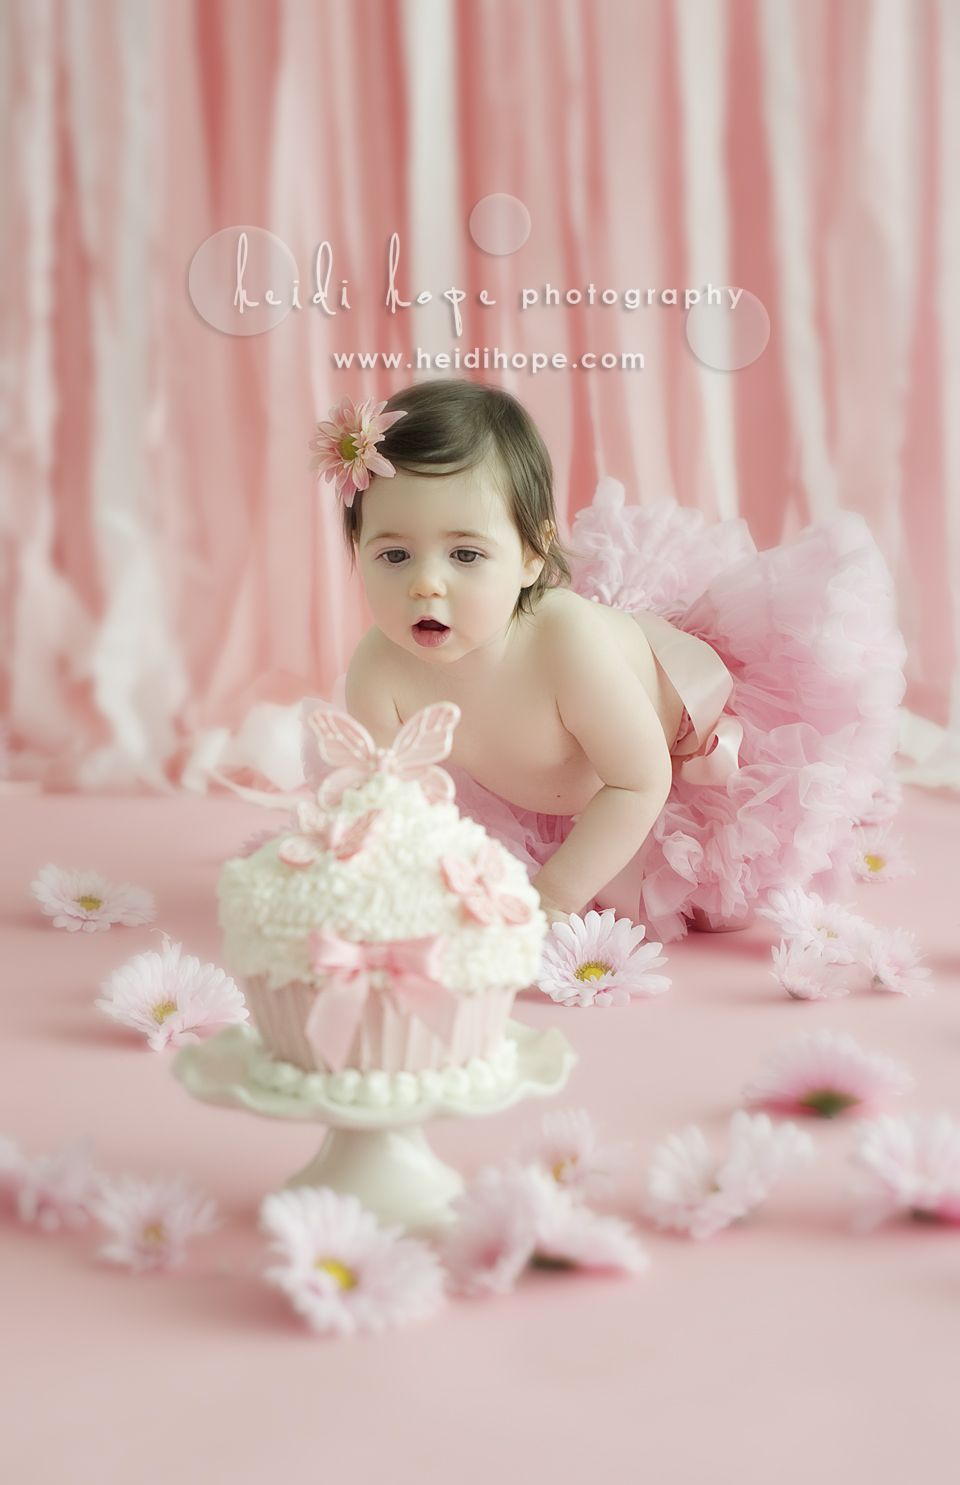 Baby o turns 1 year old rhode island and central massachusetts first birthday cake smash portrait photographer heidi hope photography